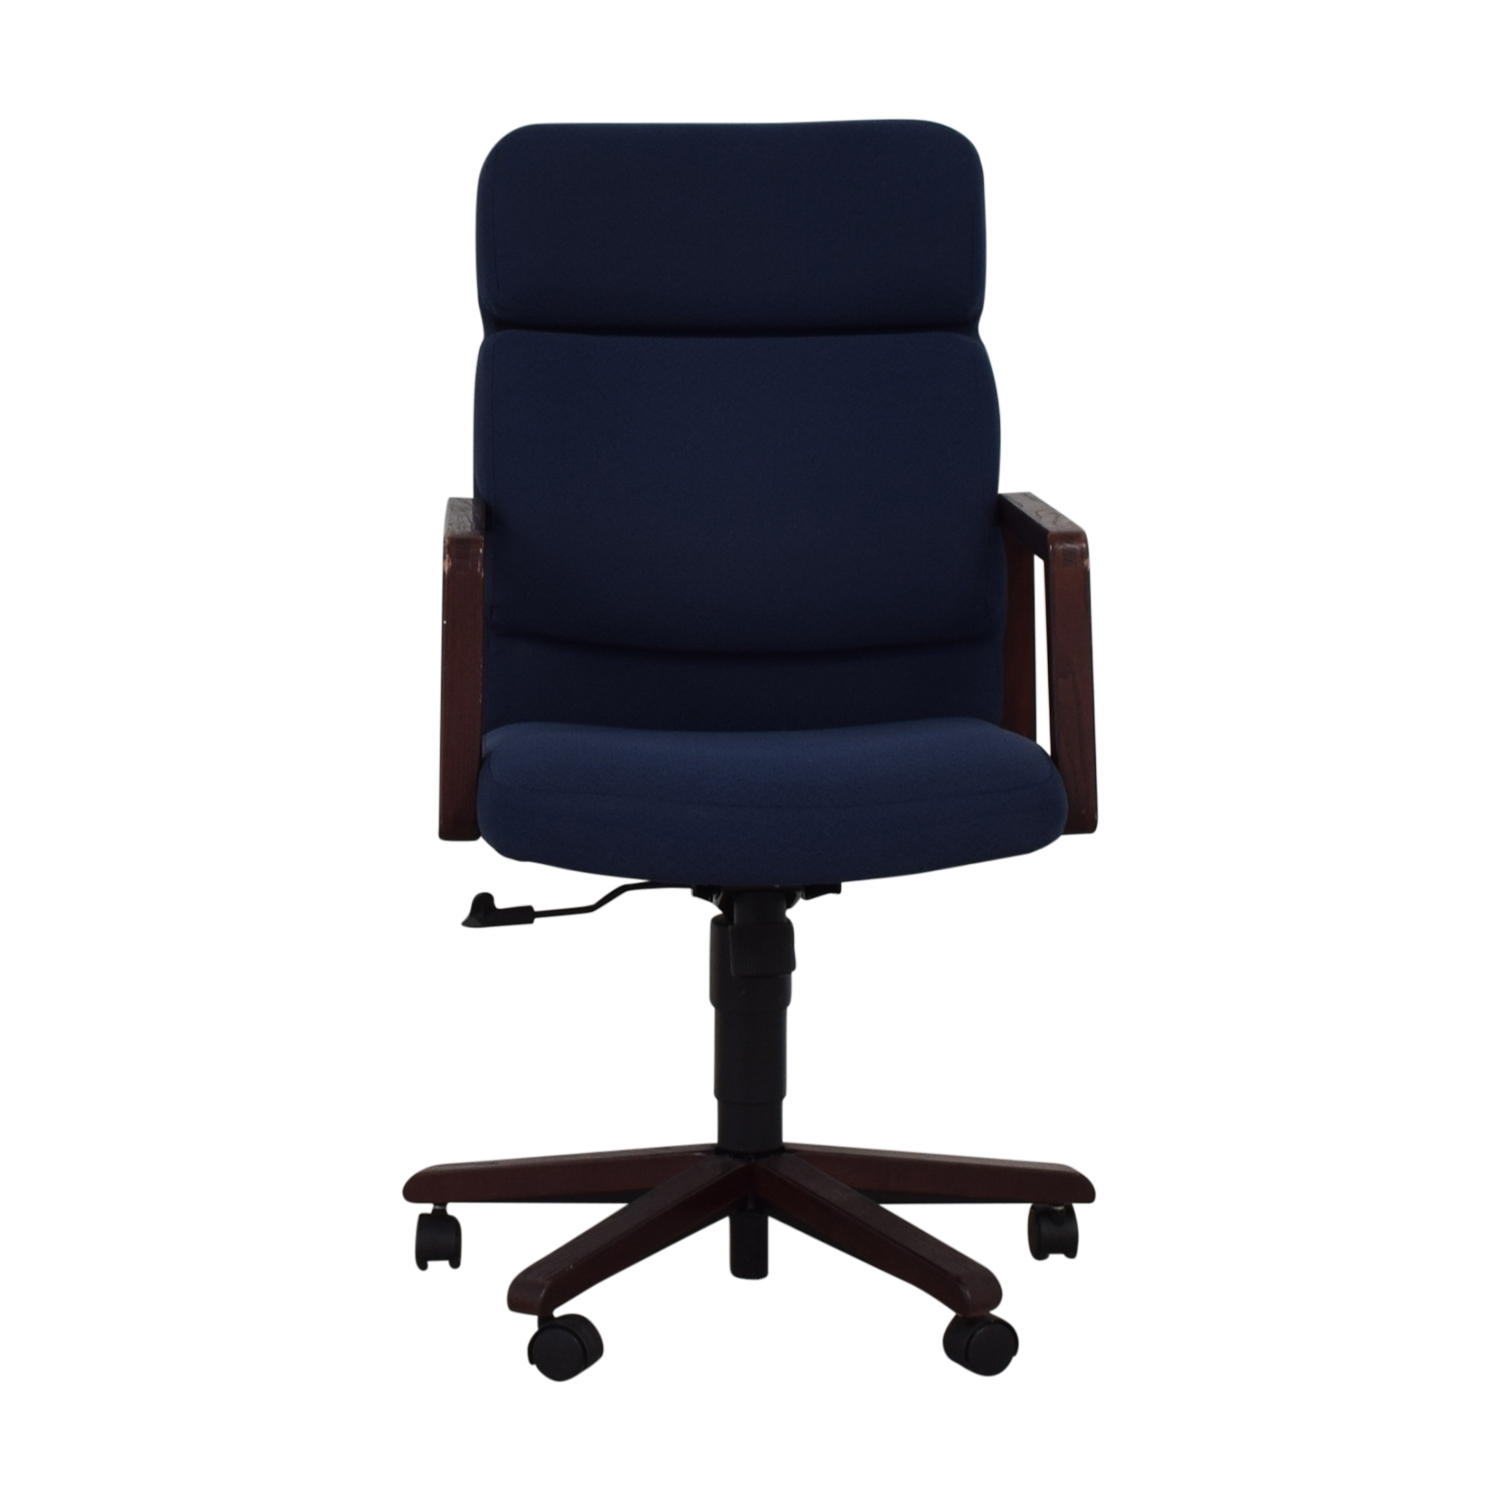 buy  Blue Office Chair on Castors online